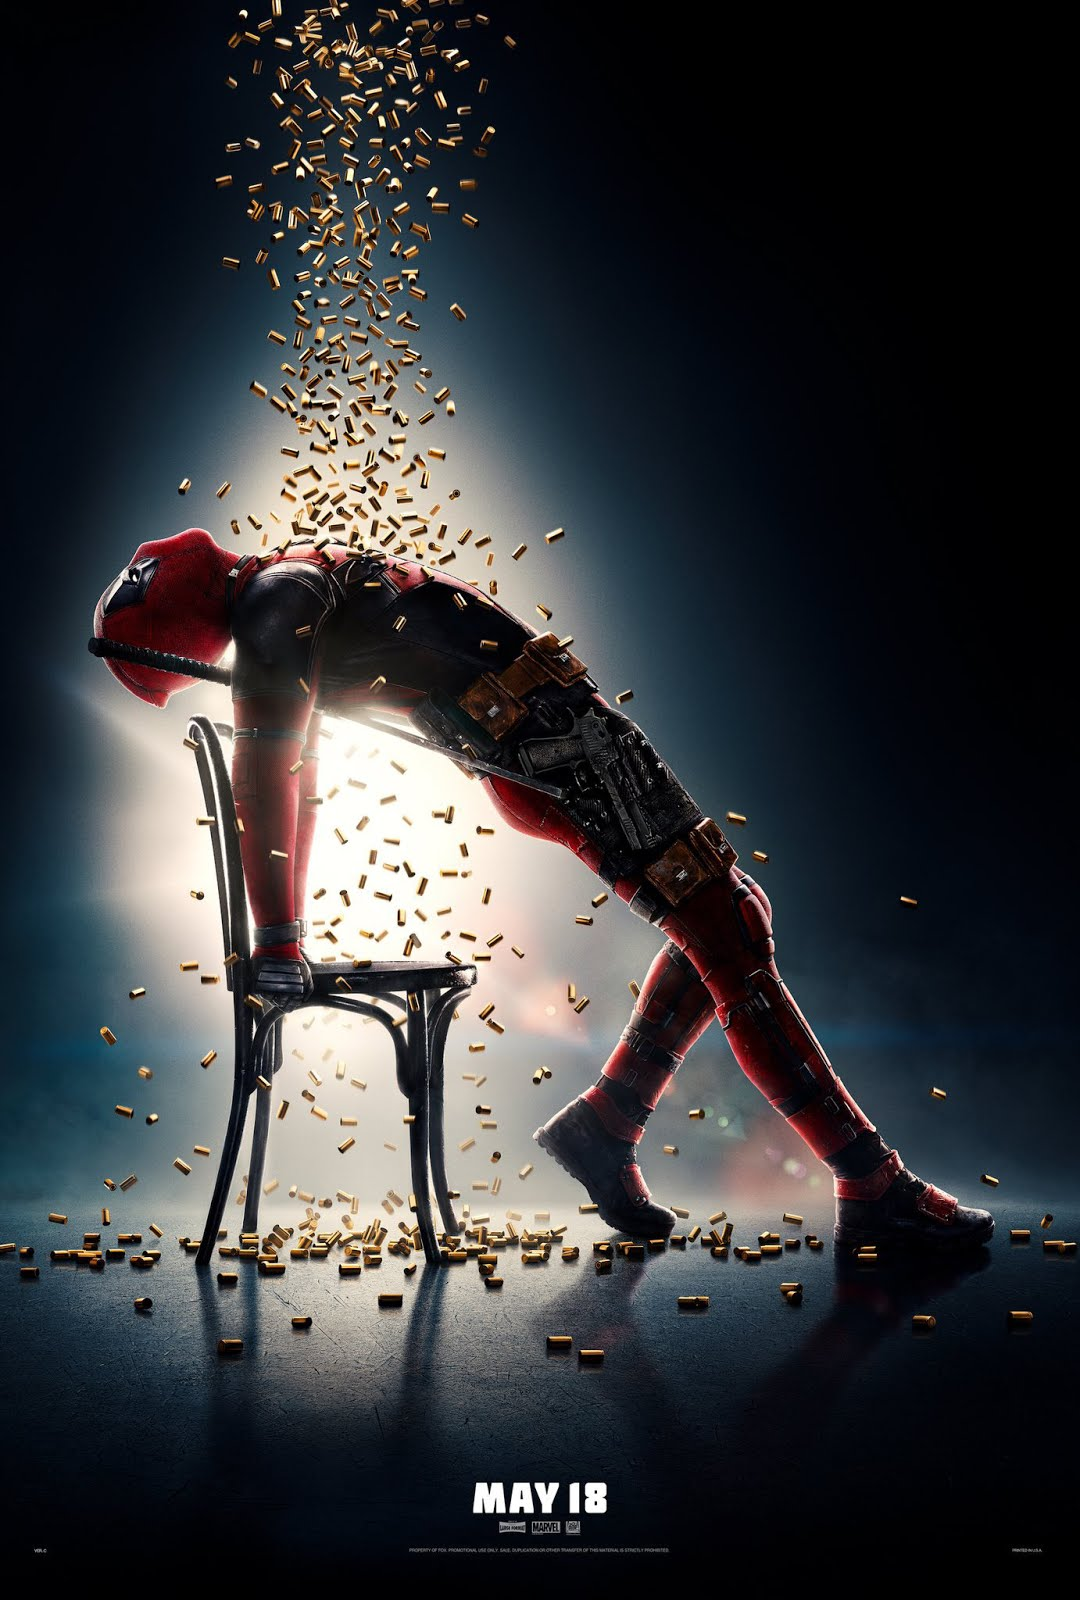 Deadpool 2 (2018) Hindi Dubbed 300MB HDCAM-Rip 480p x264